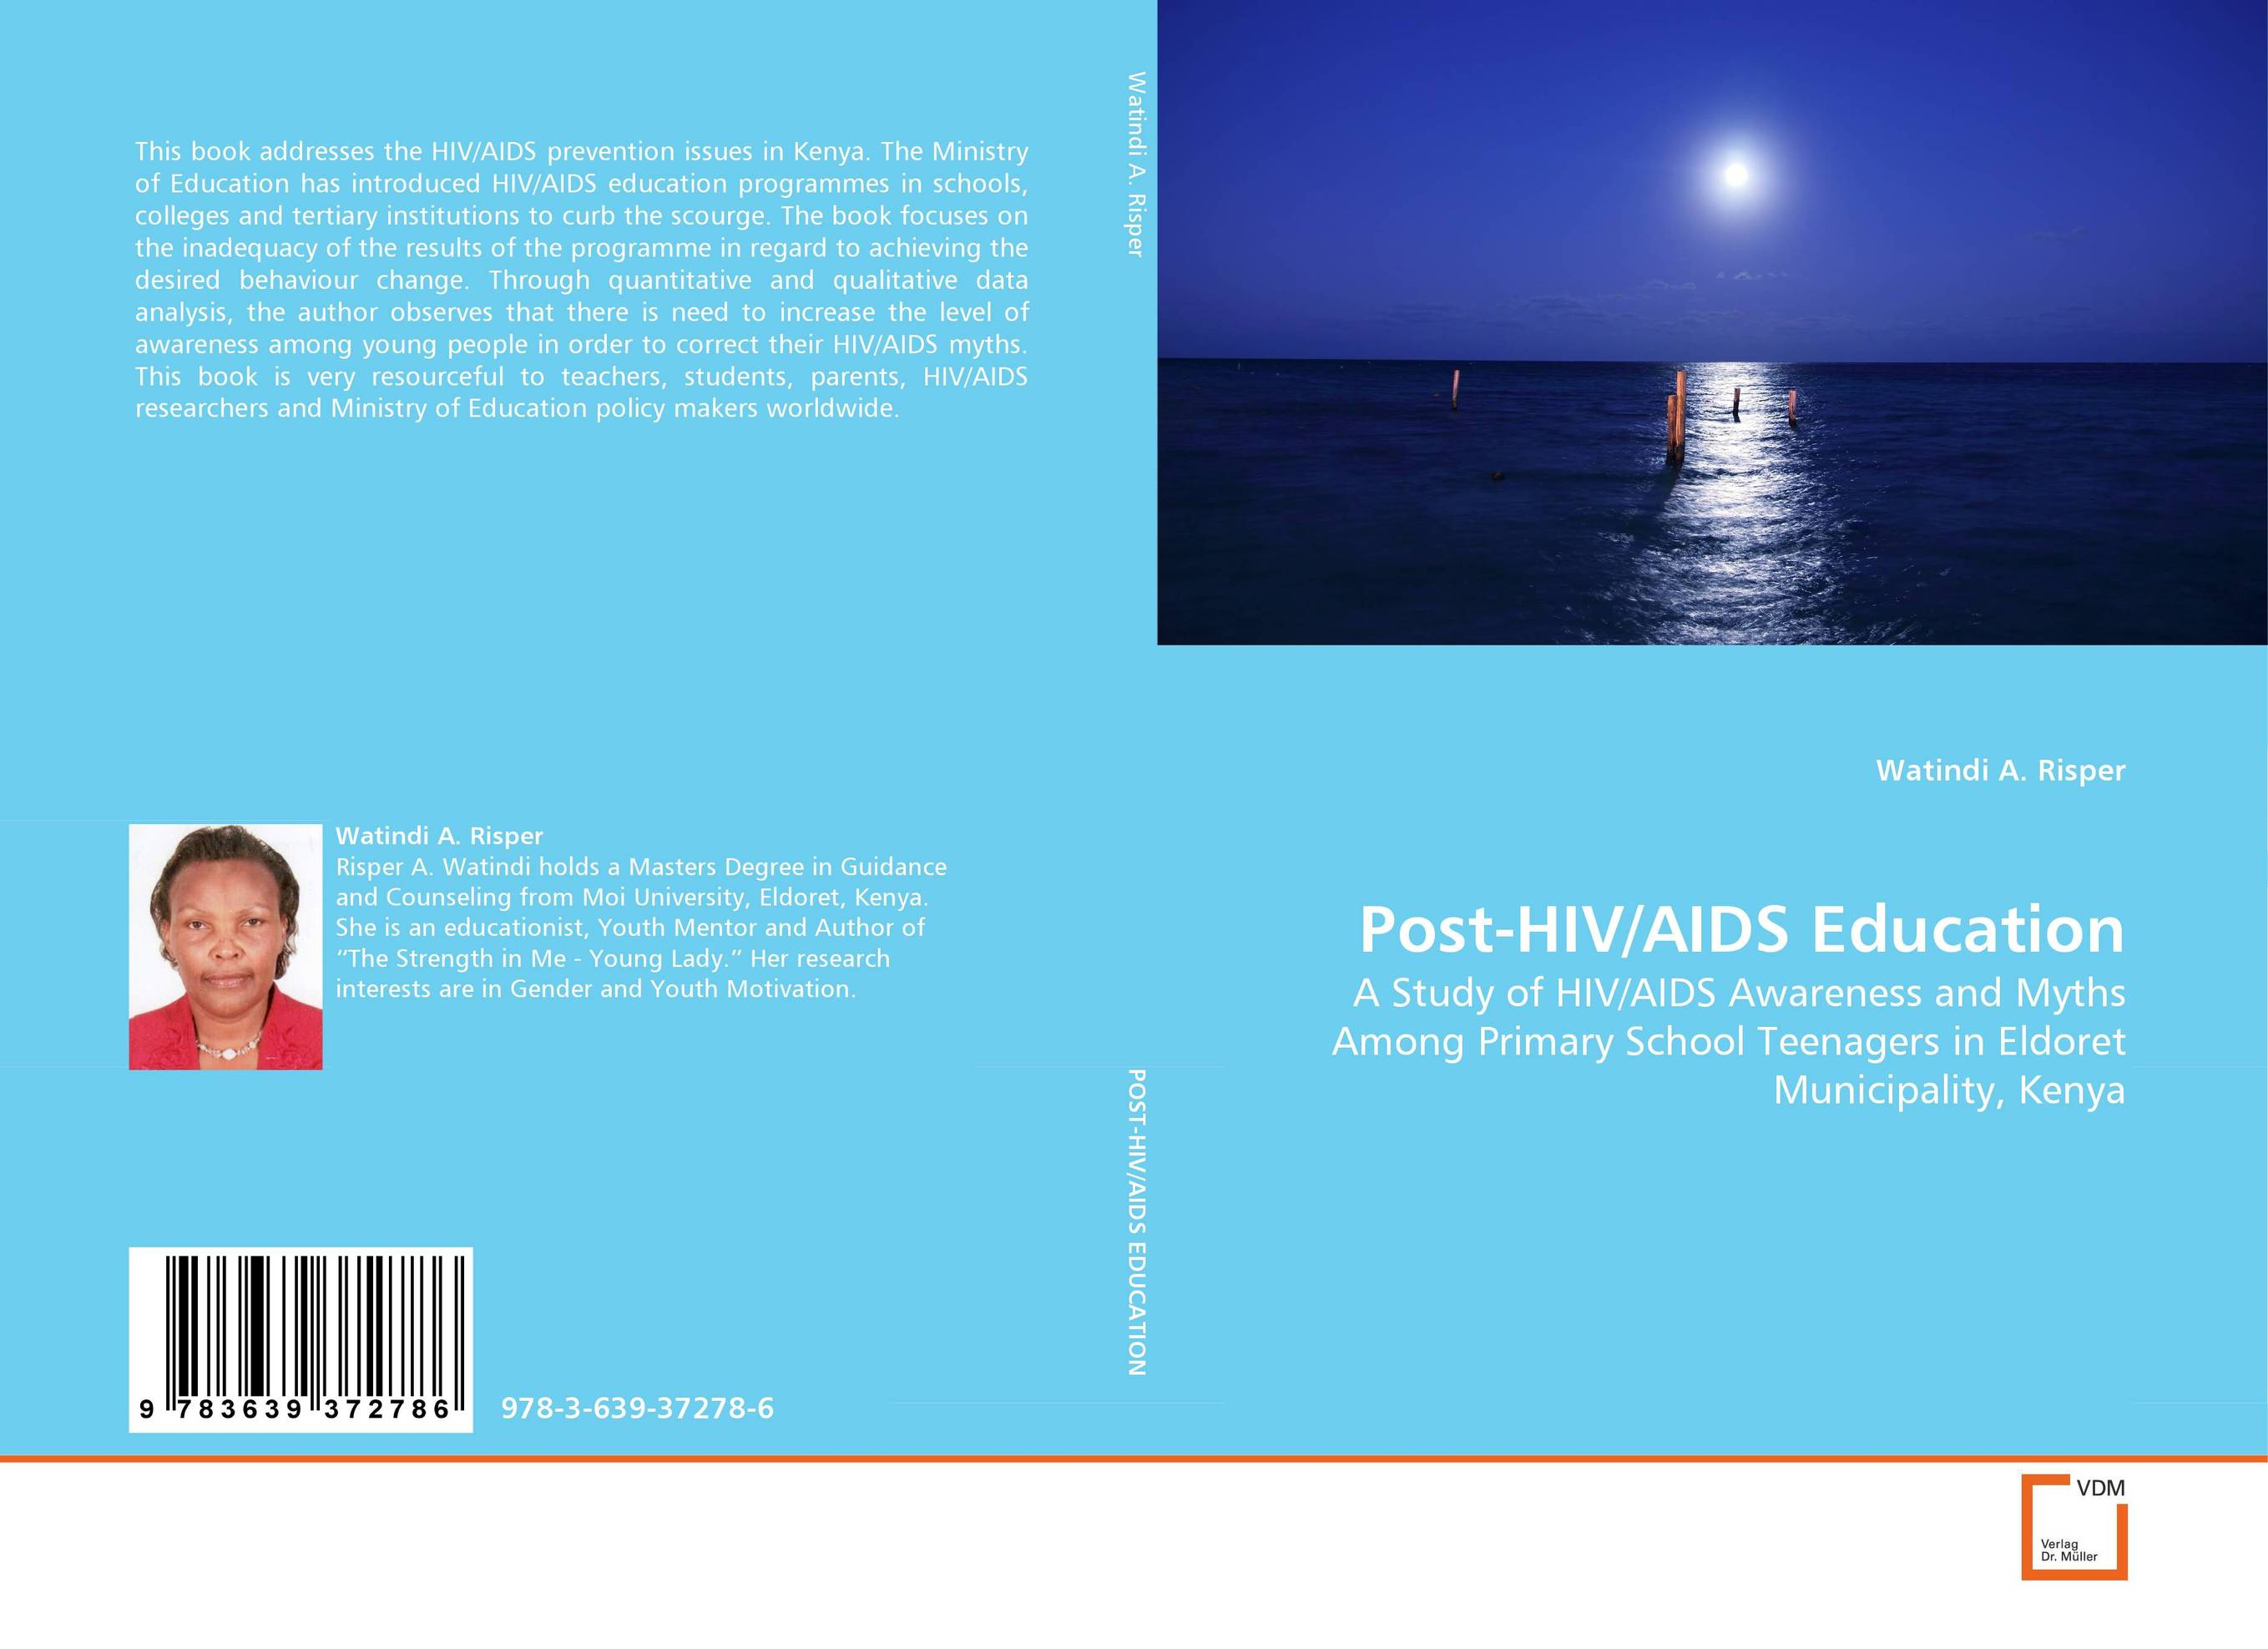 Post-HIV/AIDS Education